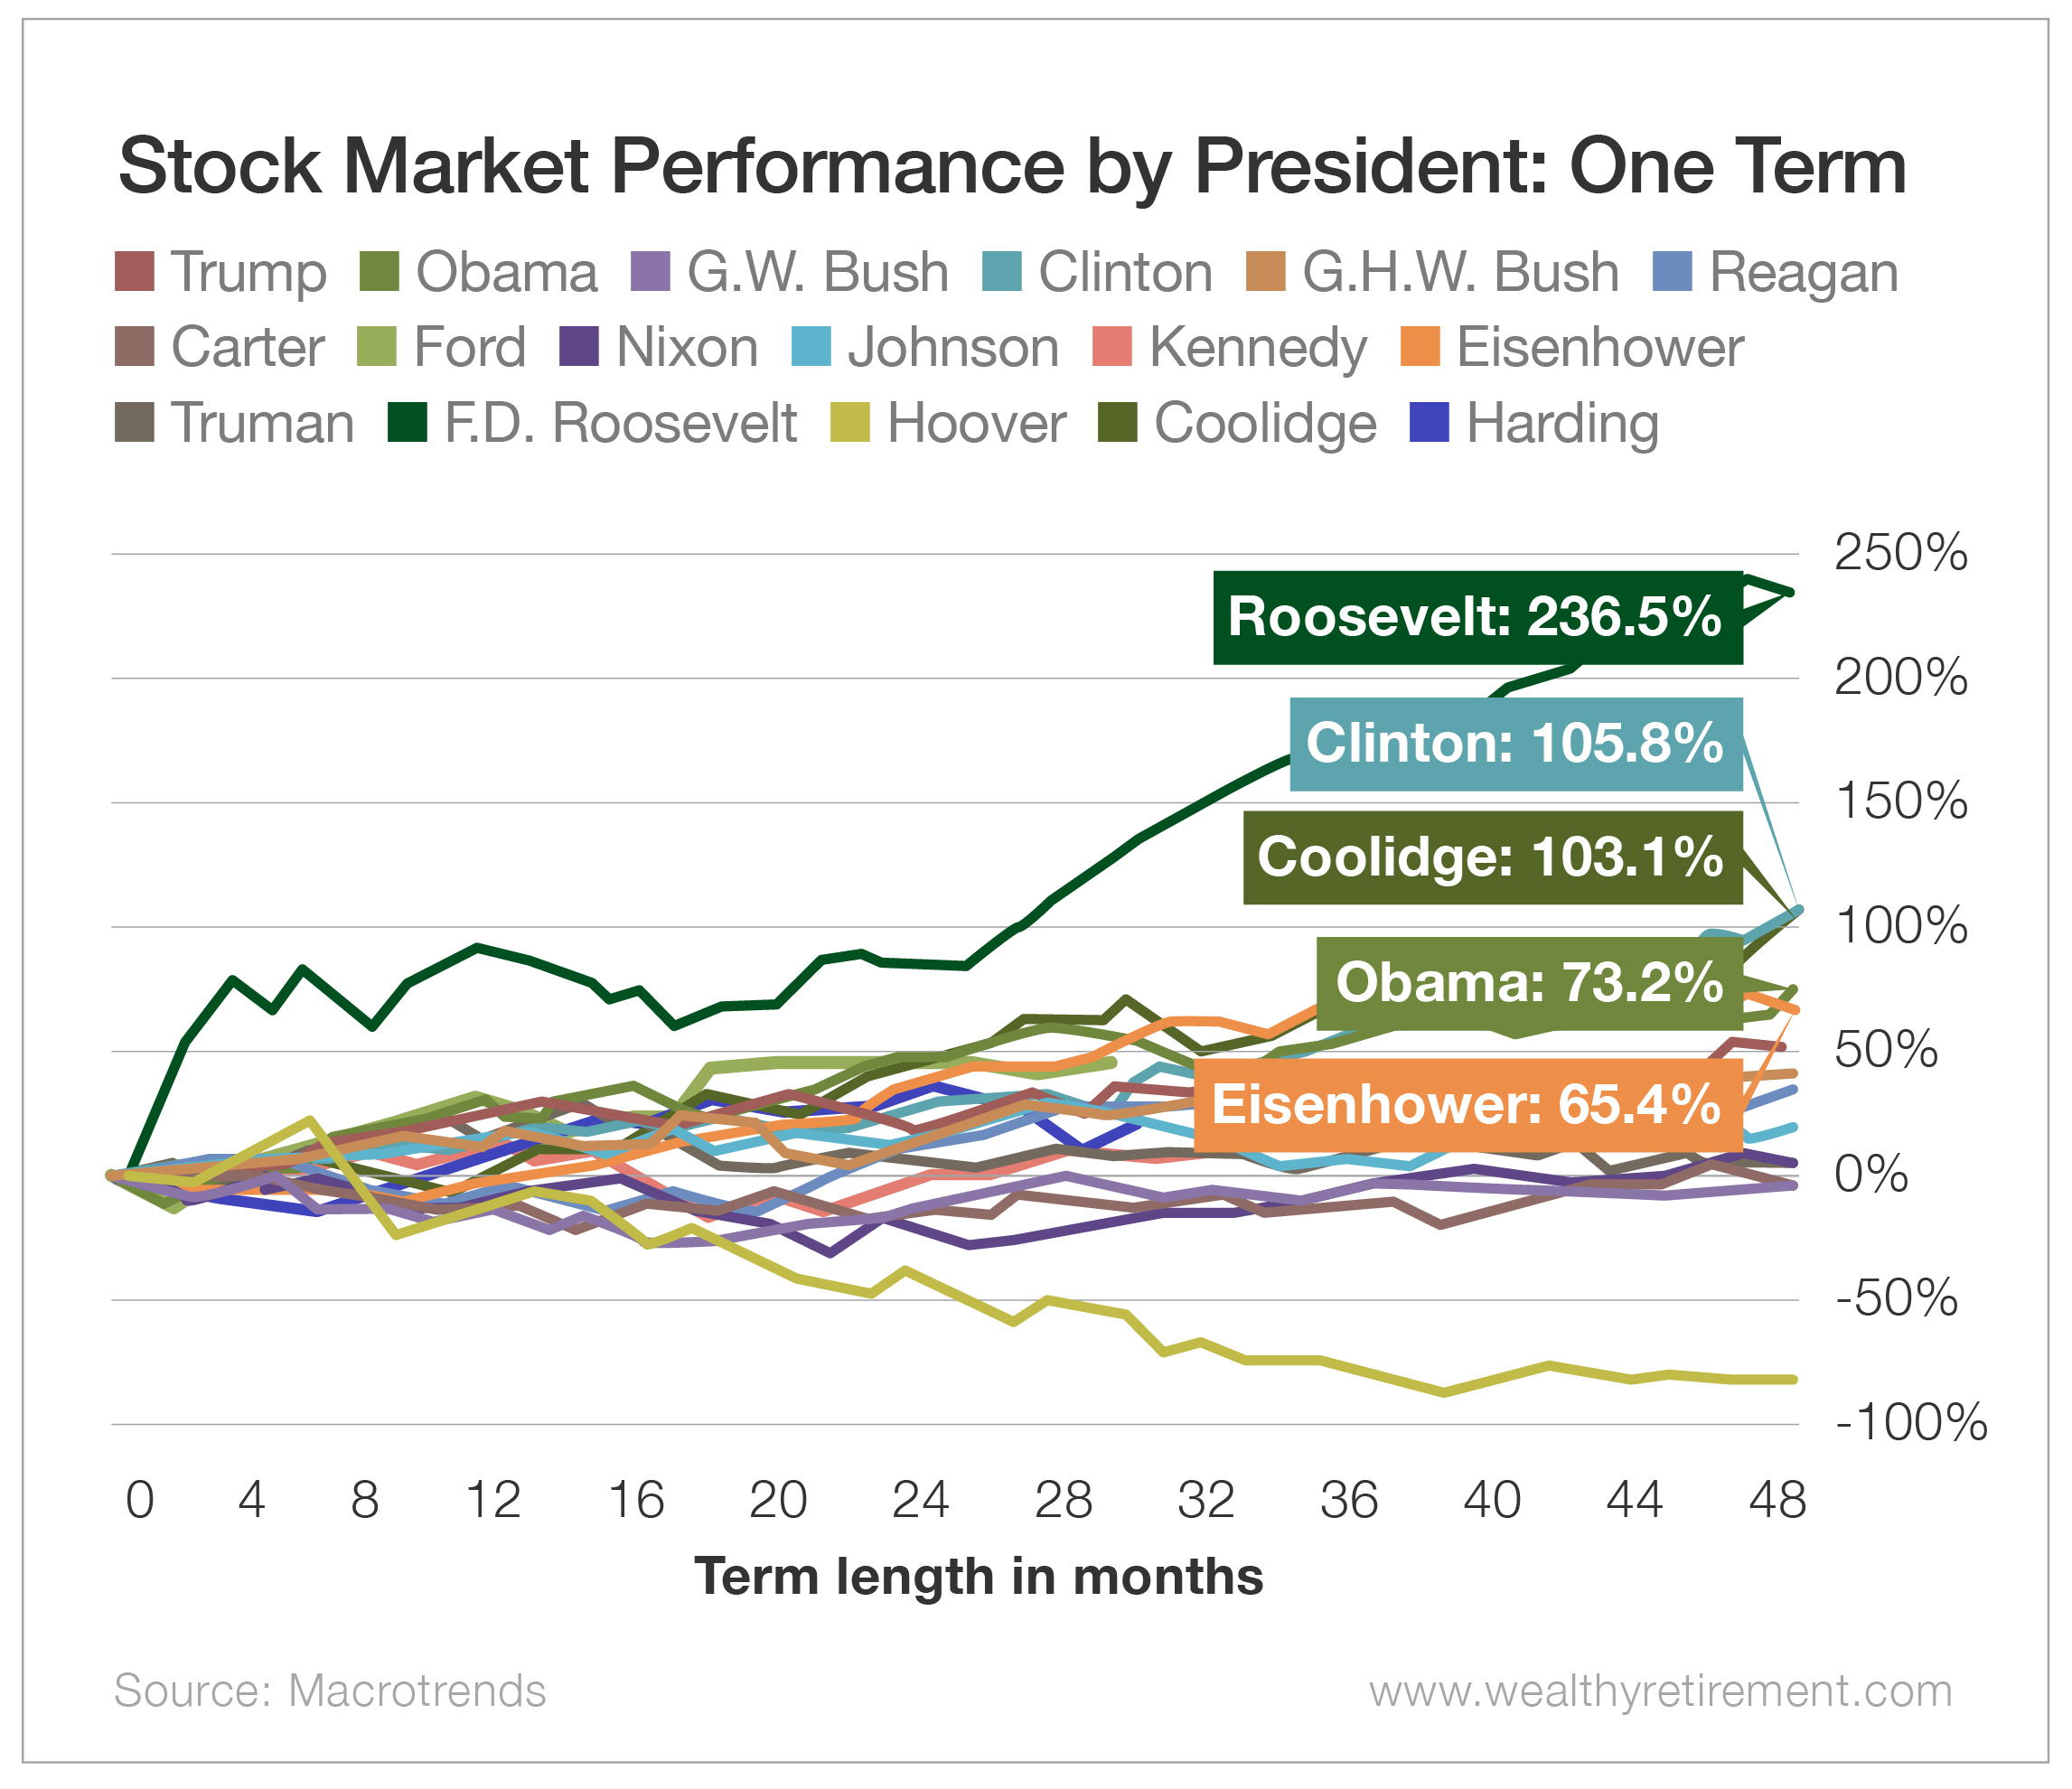 Stock Market Performance by President: One Term